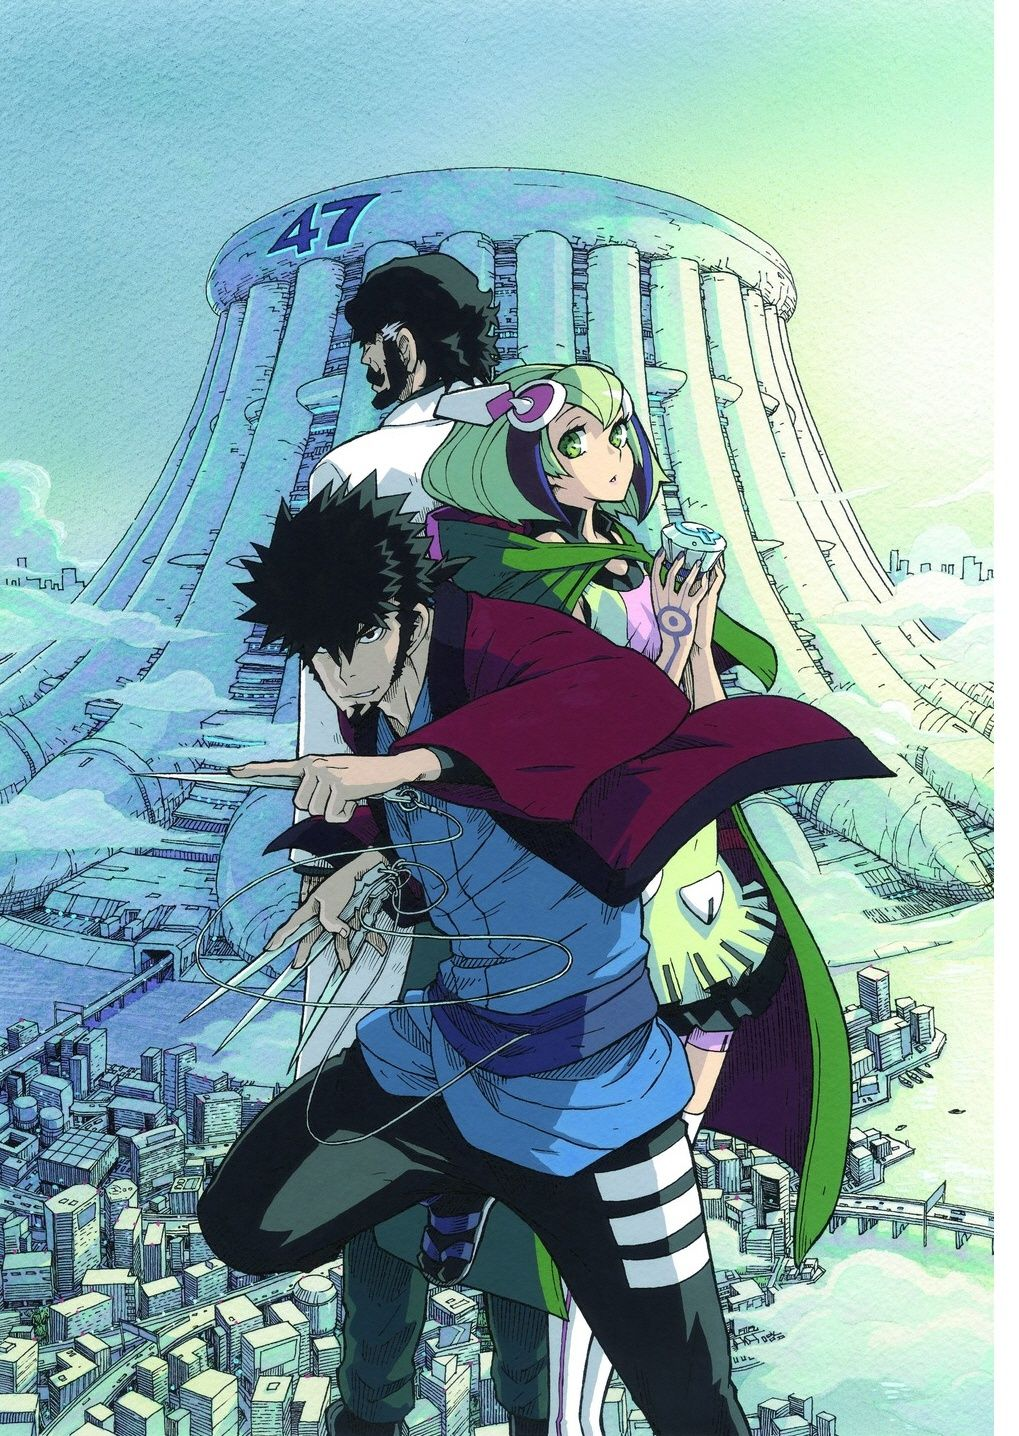 New animation in Jan. 2016 [Dimension W] Anime